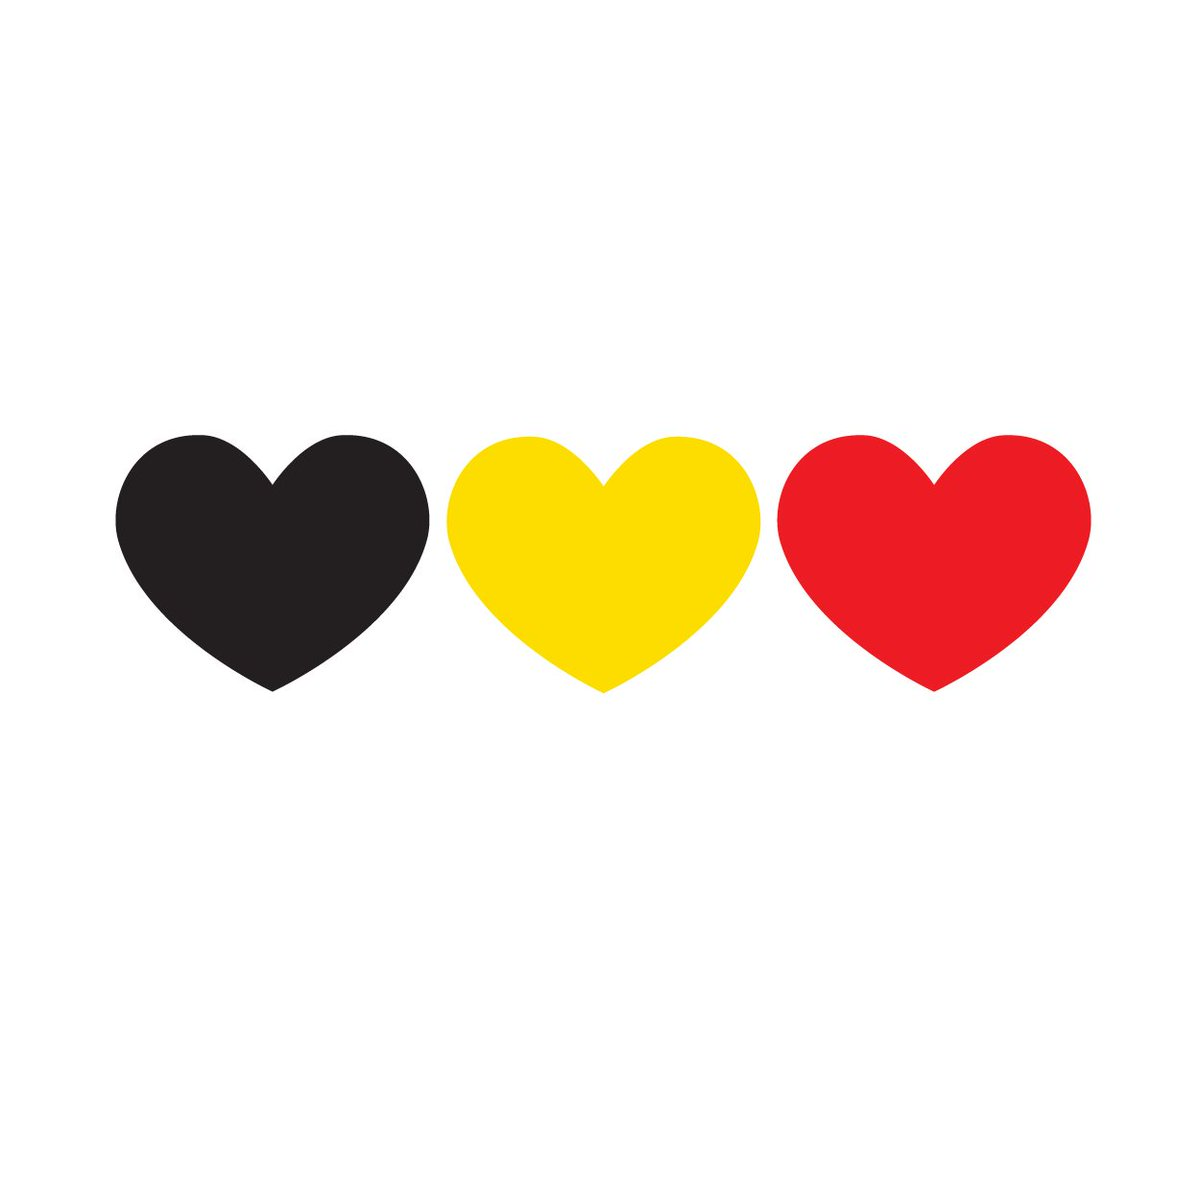 Our hearts and souls are with Brussels. #PrayForBelgium #Brussels https://t.co/4udGfI07n8